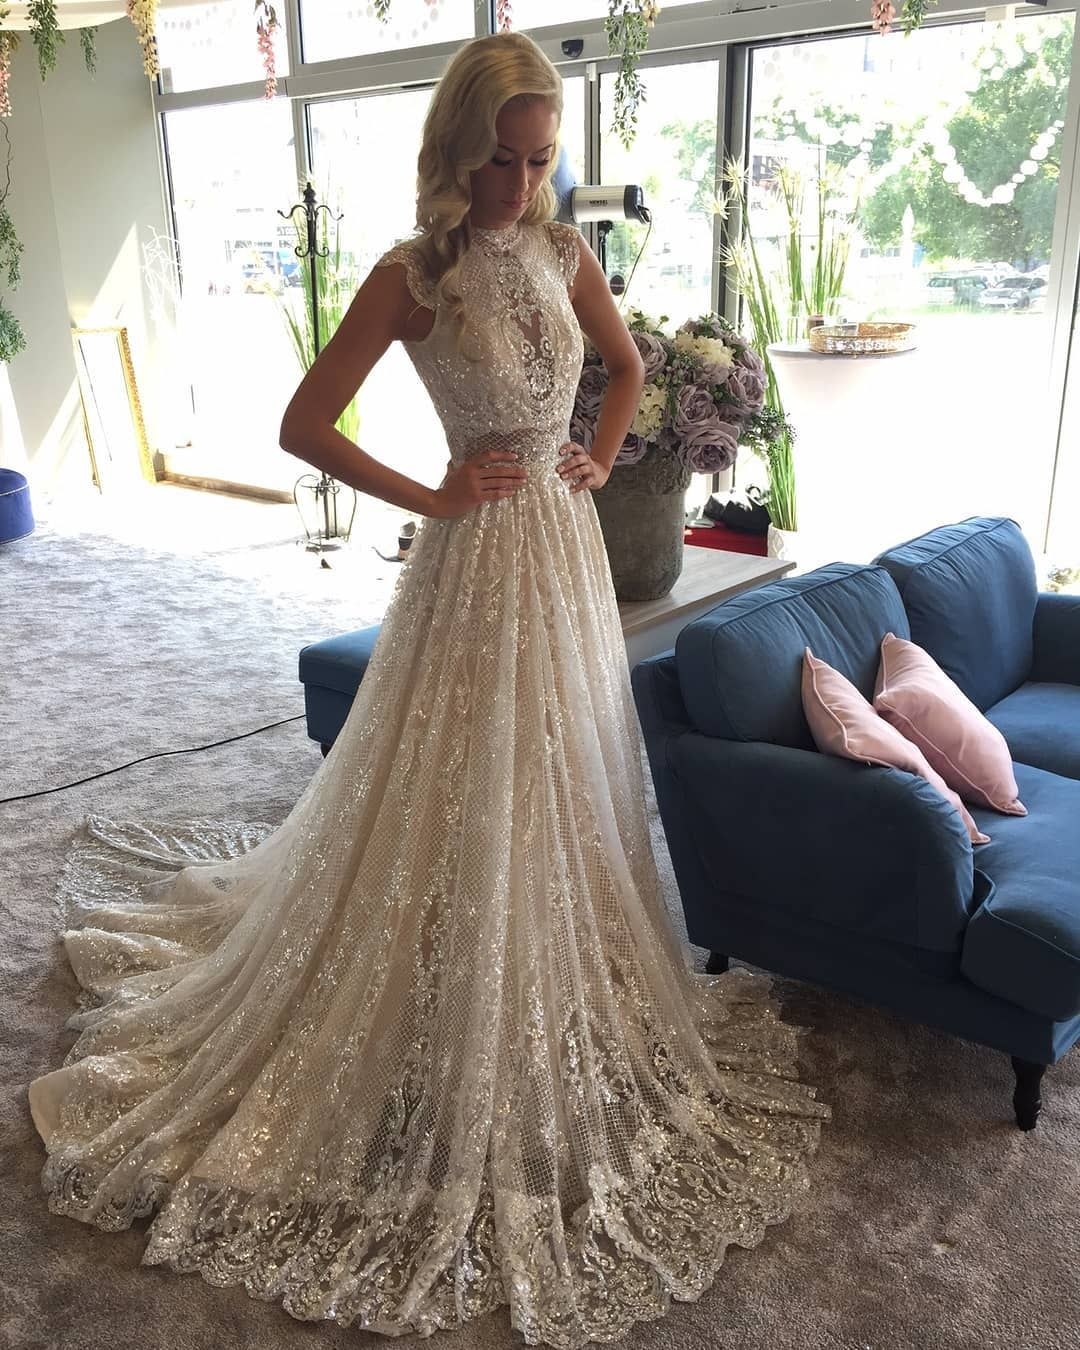 b0eb675d3679 The  GALA 803 is made of  sequin embossed tulle in Ivory and Diamond Silver  shades.  GLfitting  salonisabell